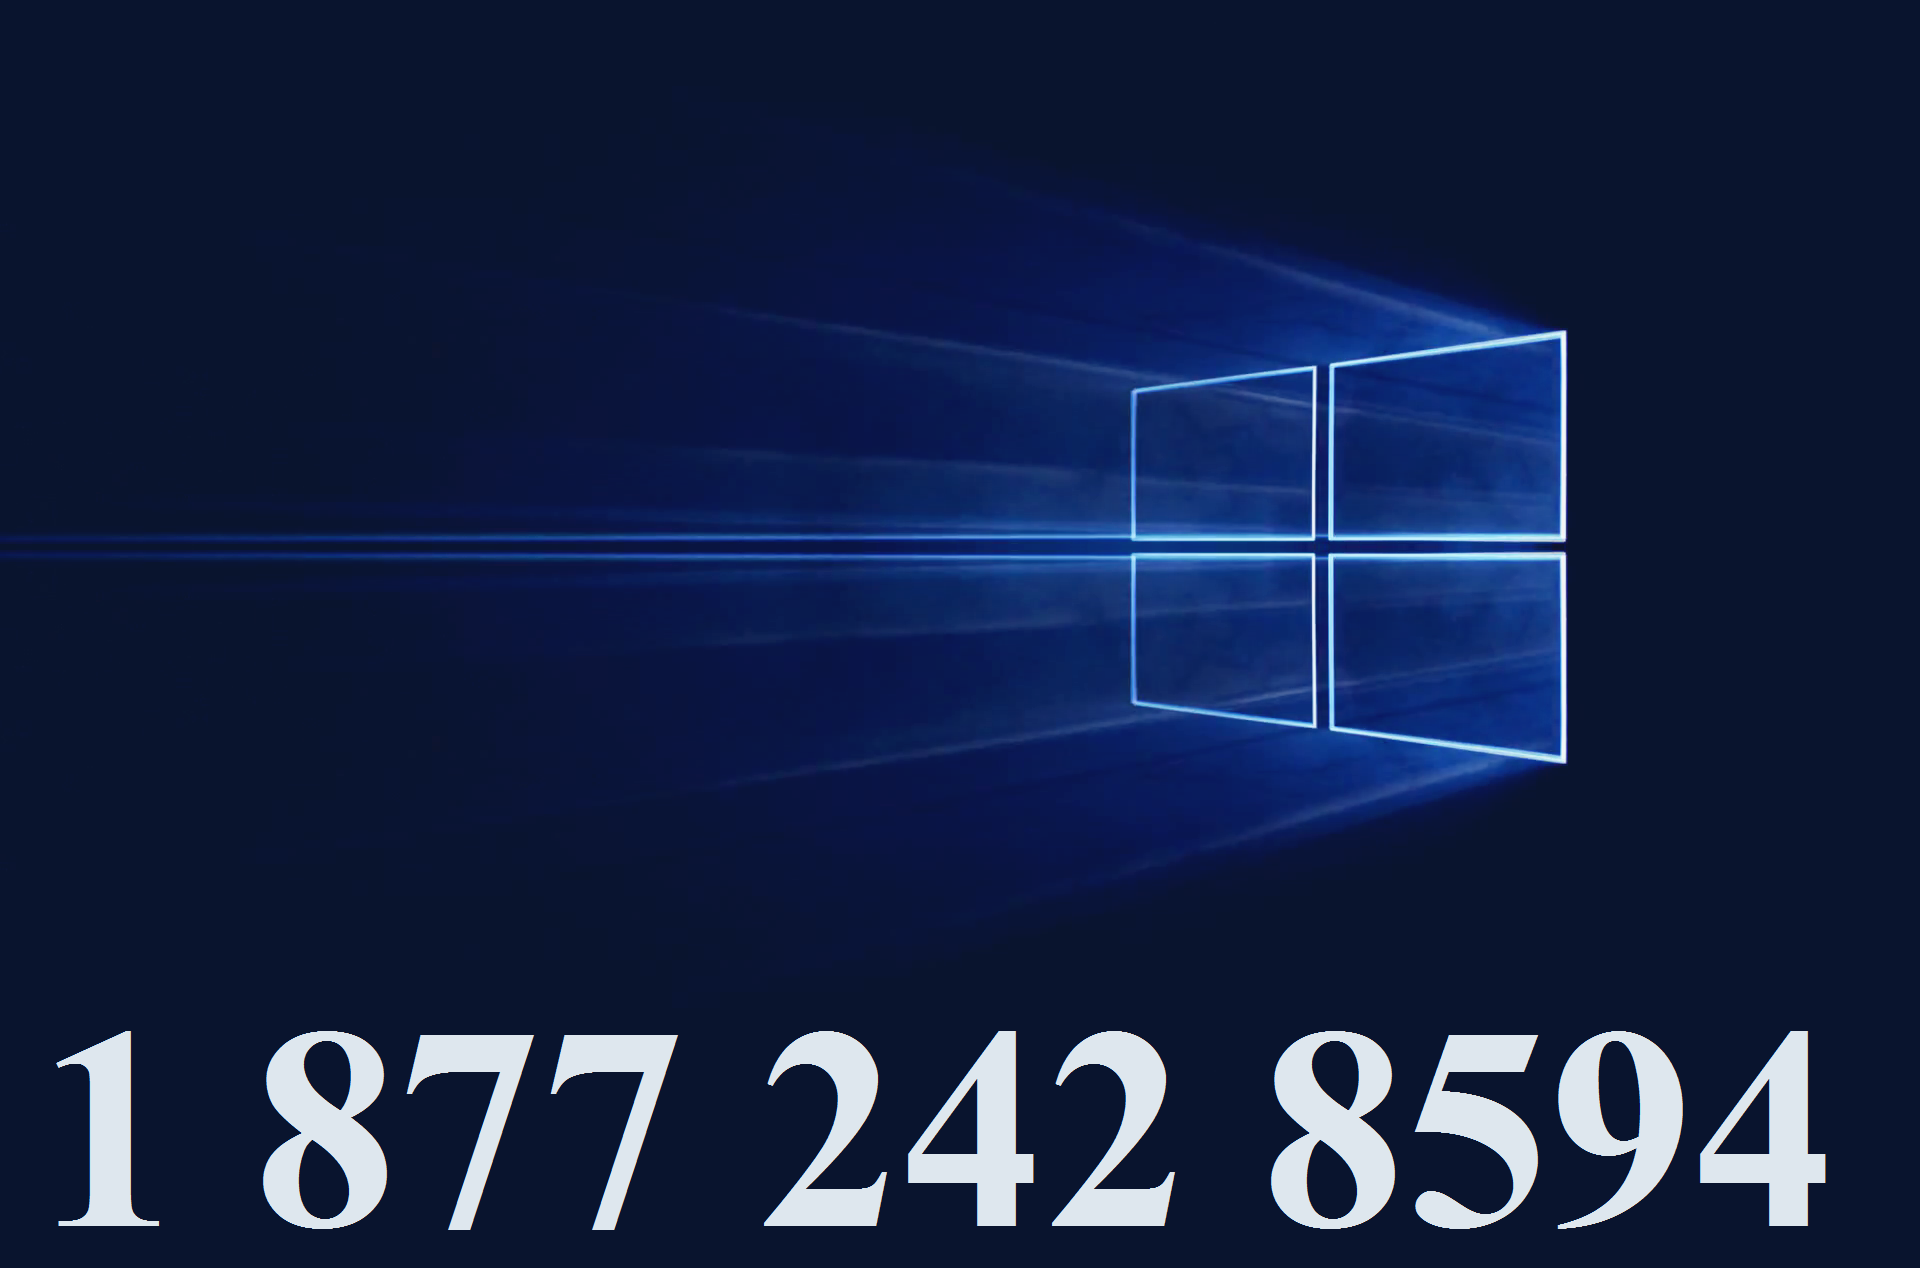 Dial~1877-242-8594 - Microsoft Customer Support Number Microsoft ...